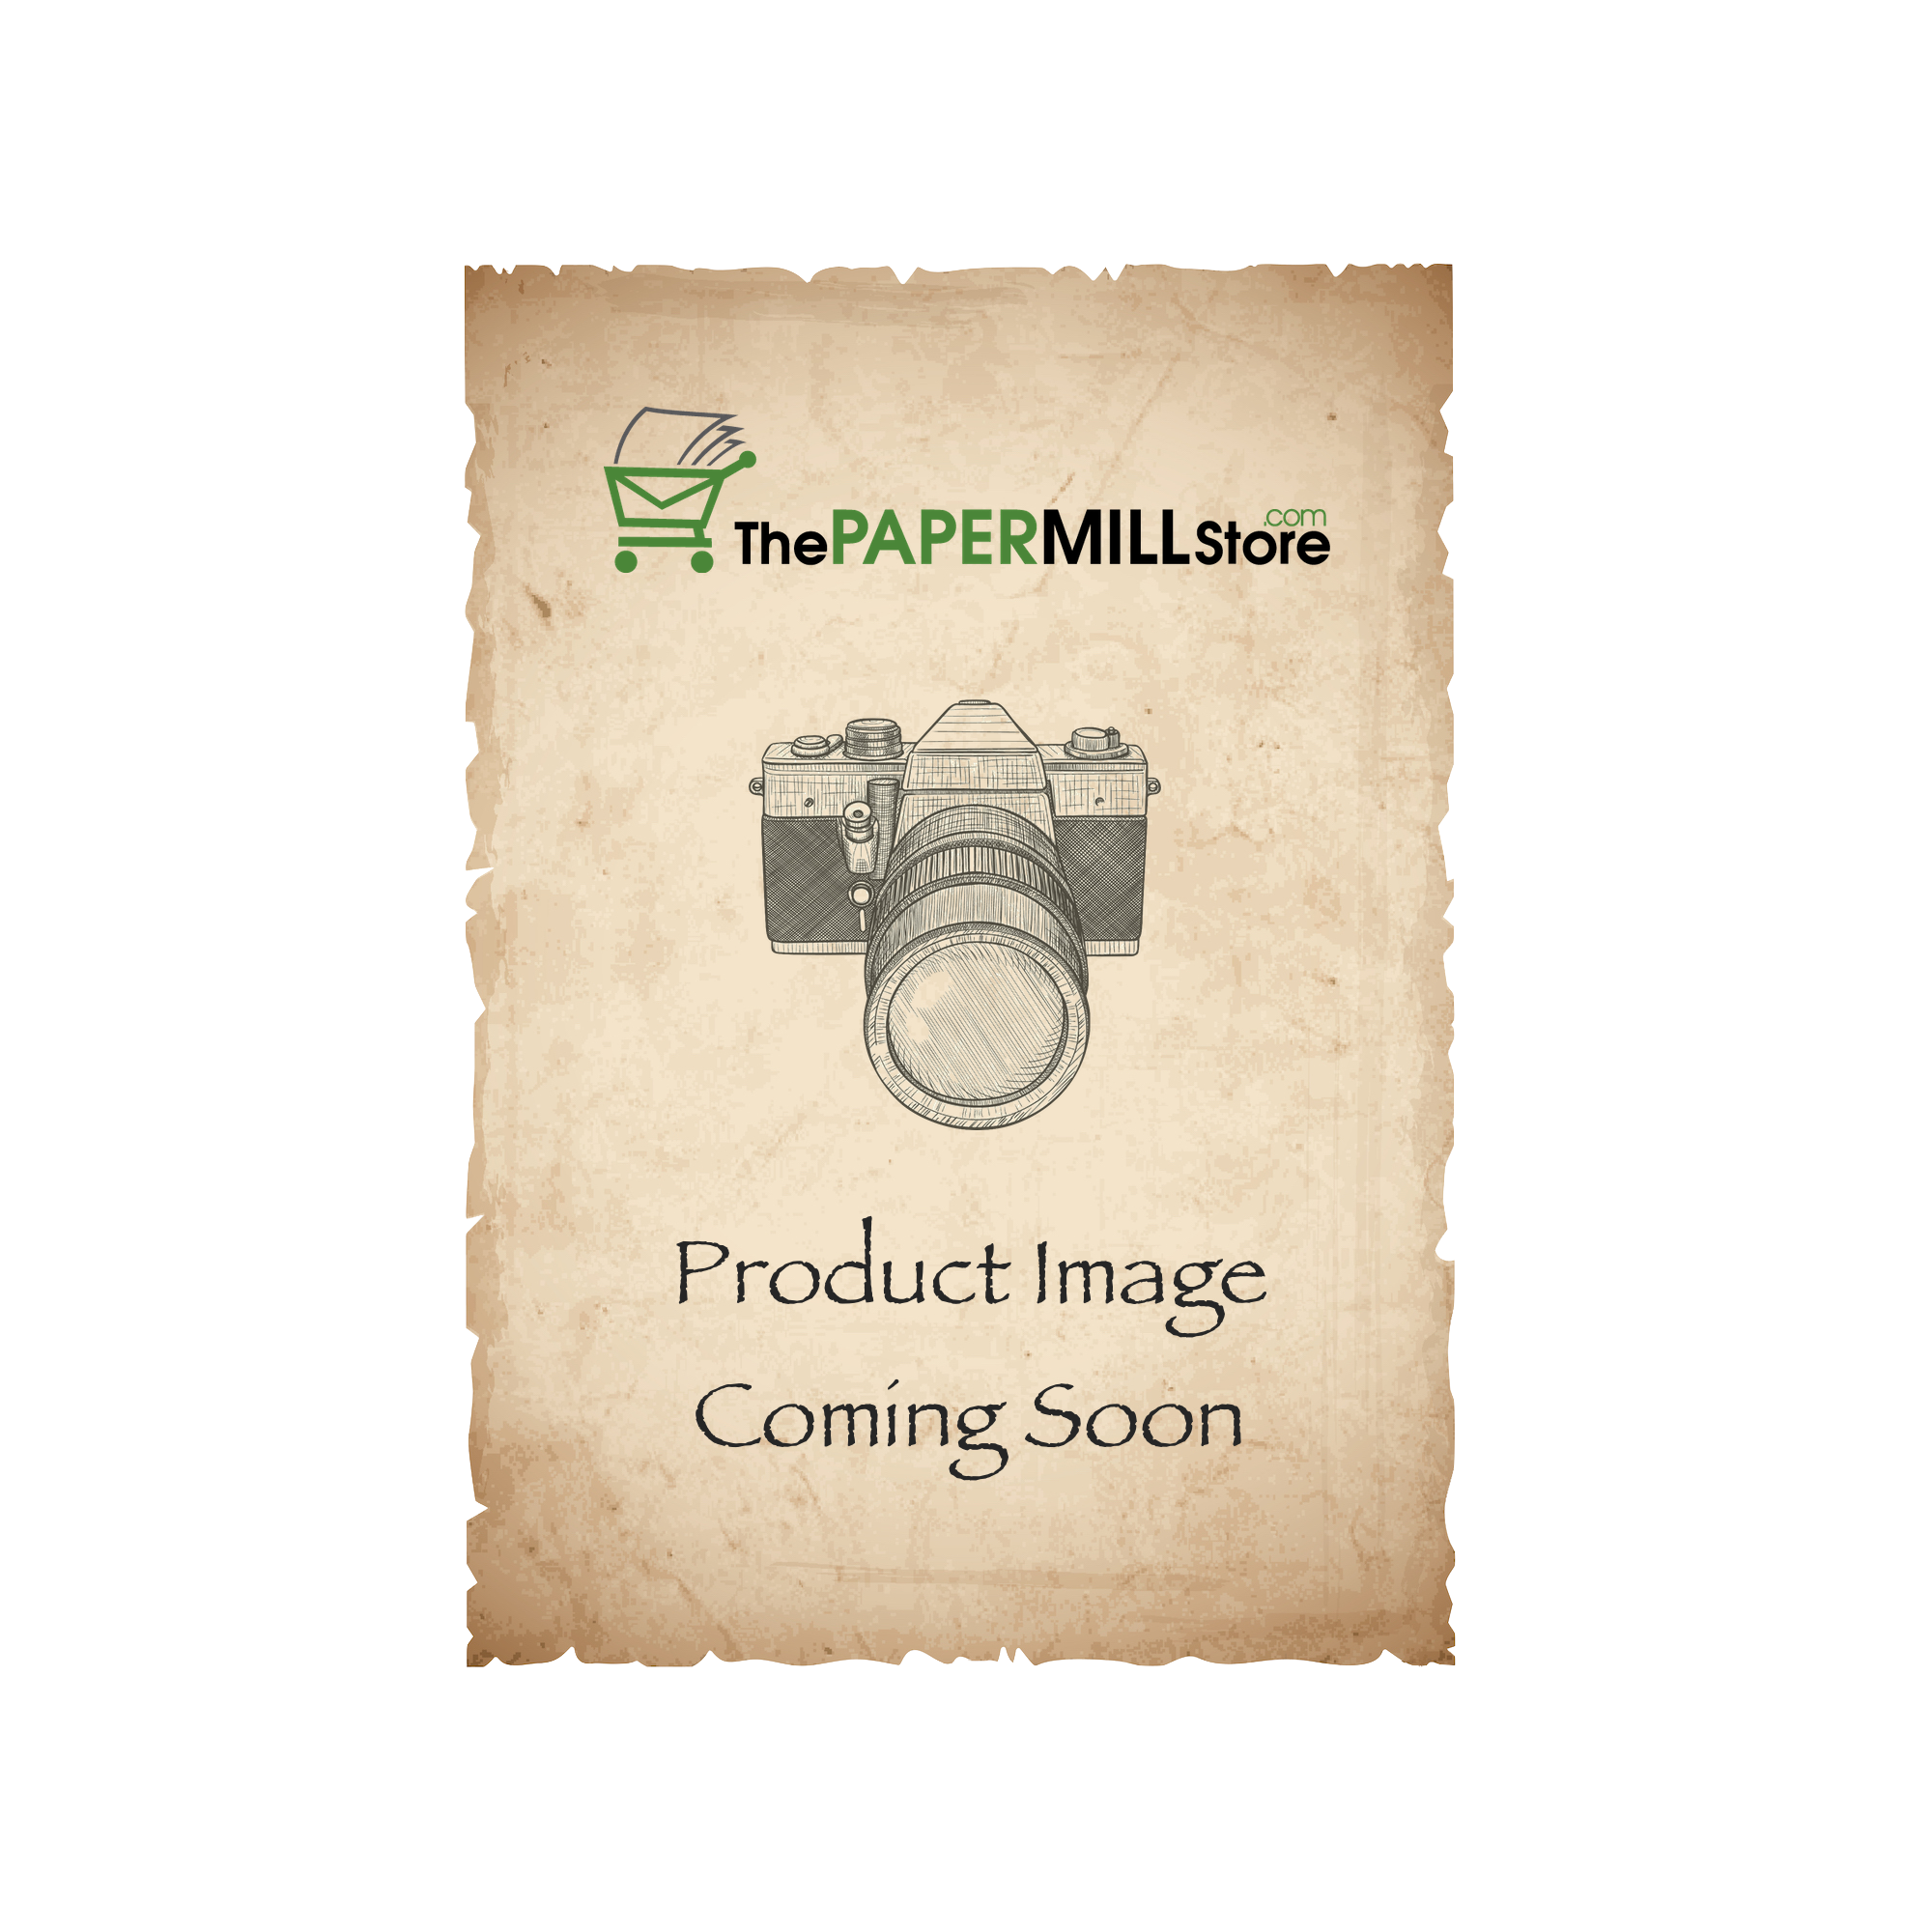 Royal Cotton Bright White Paper - 8 1/2 x 11 in 20 lb Writing Smooth  30% Recycled  25% Cotton Watermarked 500 per Ream